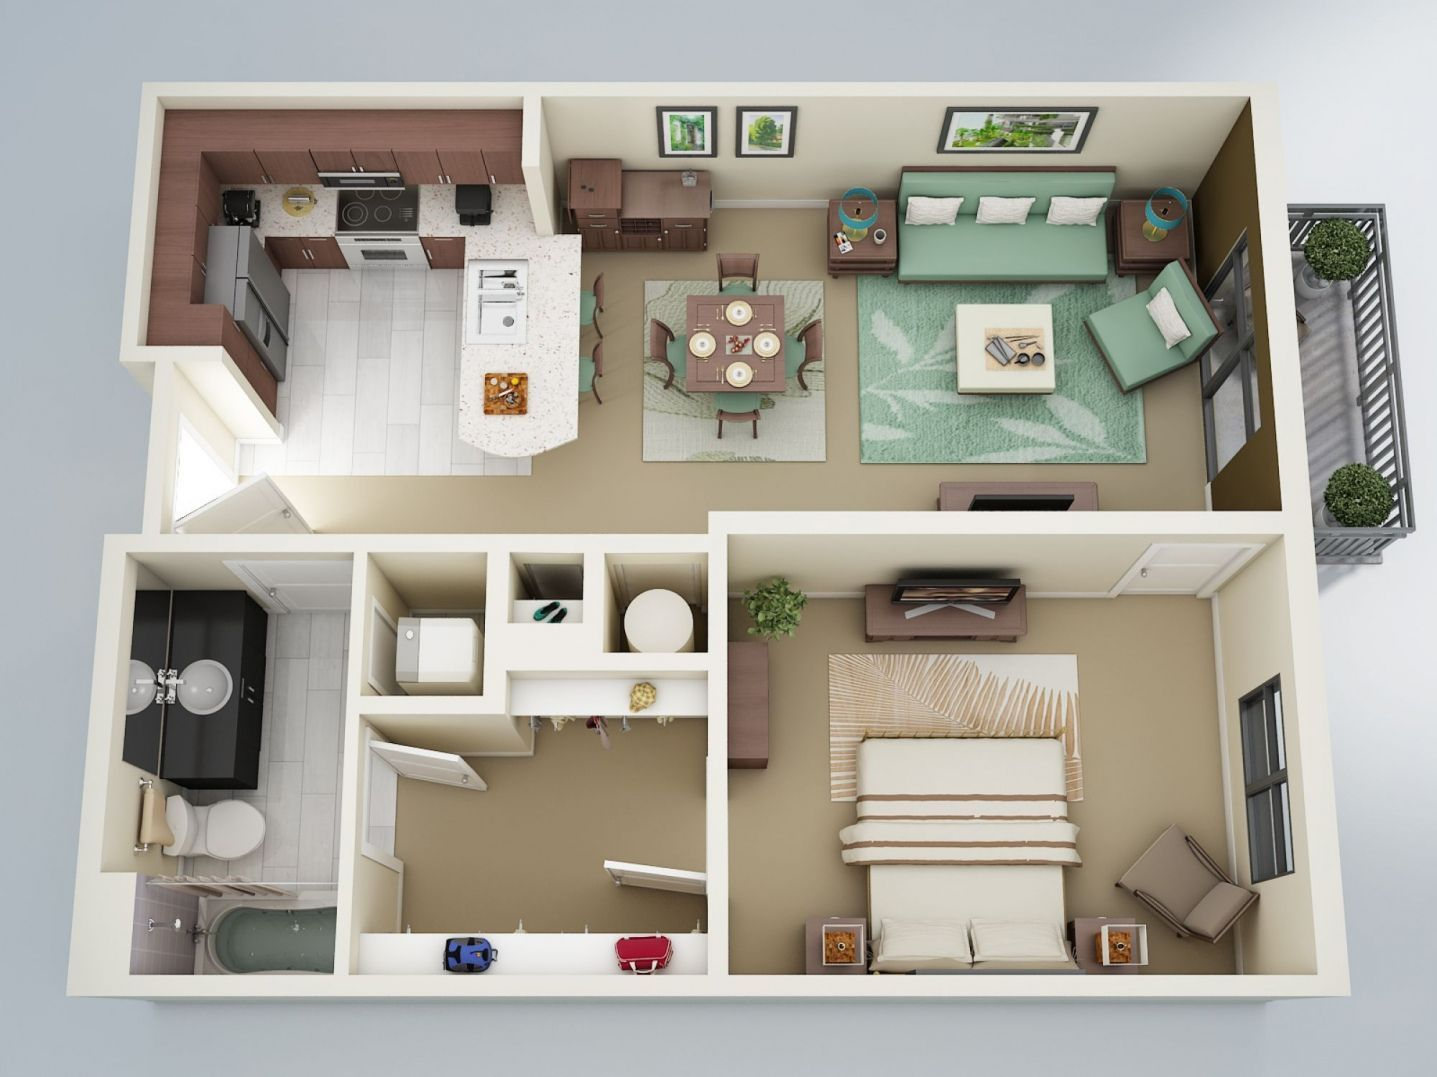 1 bedroom plus loft  Pin by Makayla on Sims   Pinterest  House Bedroom apartment and